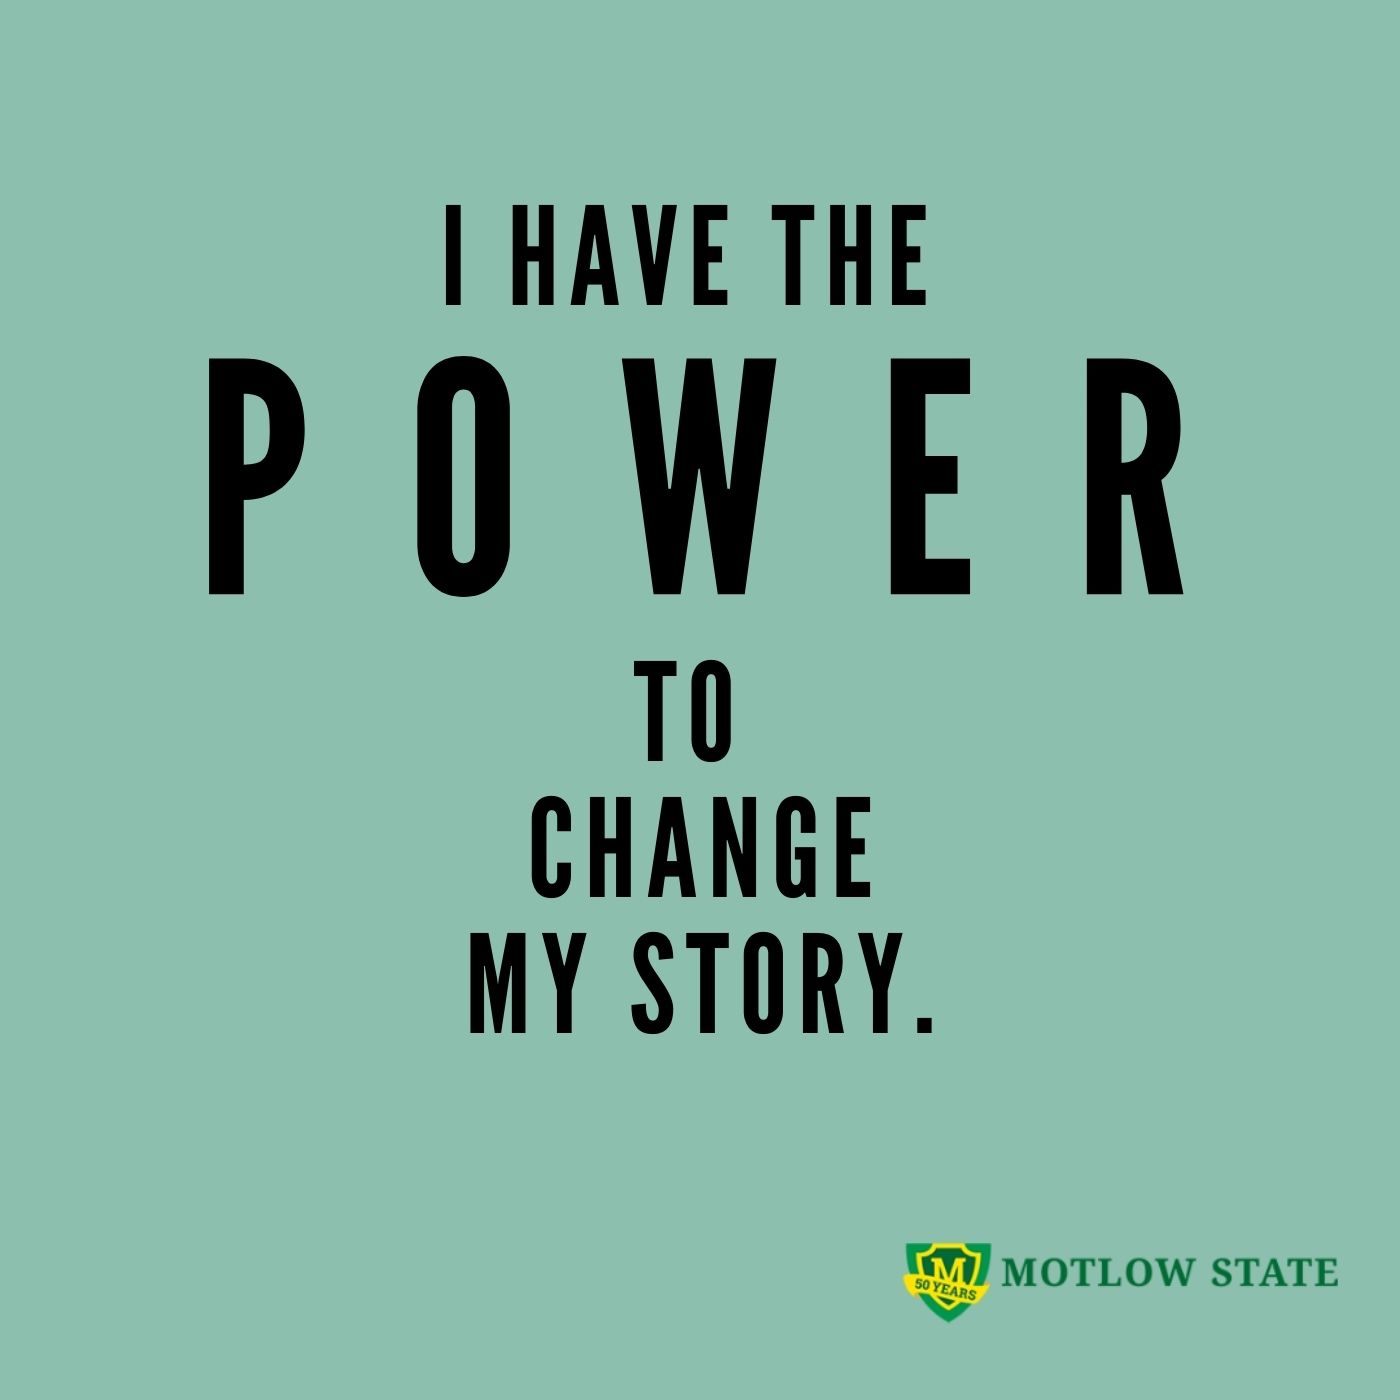 I have the power to change my story.